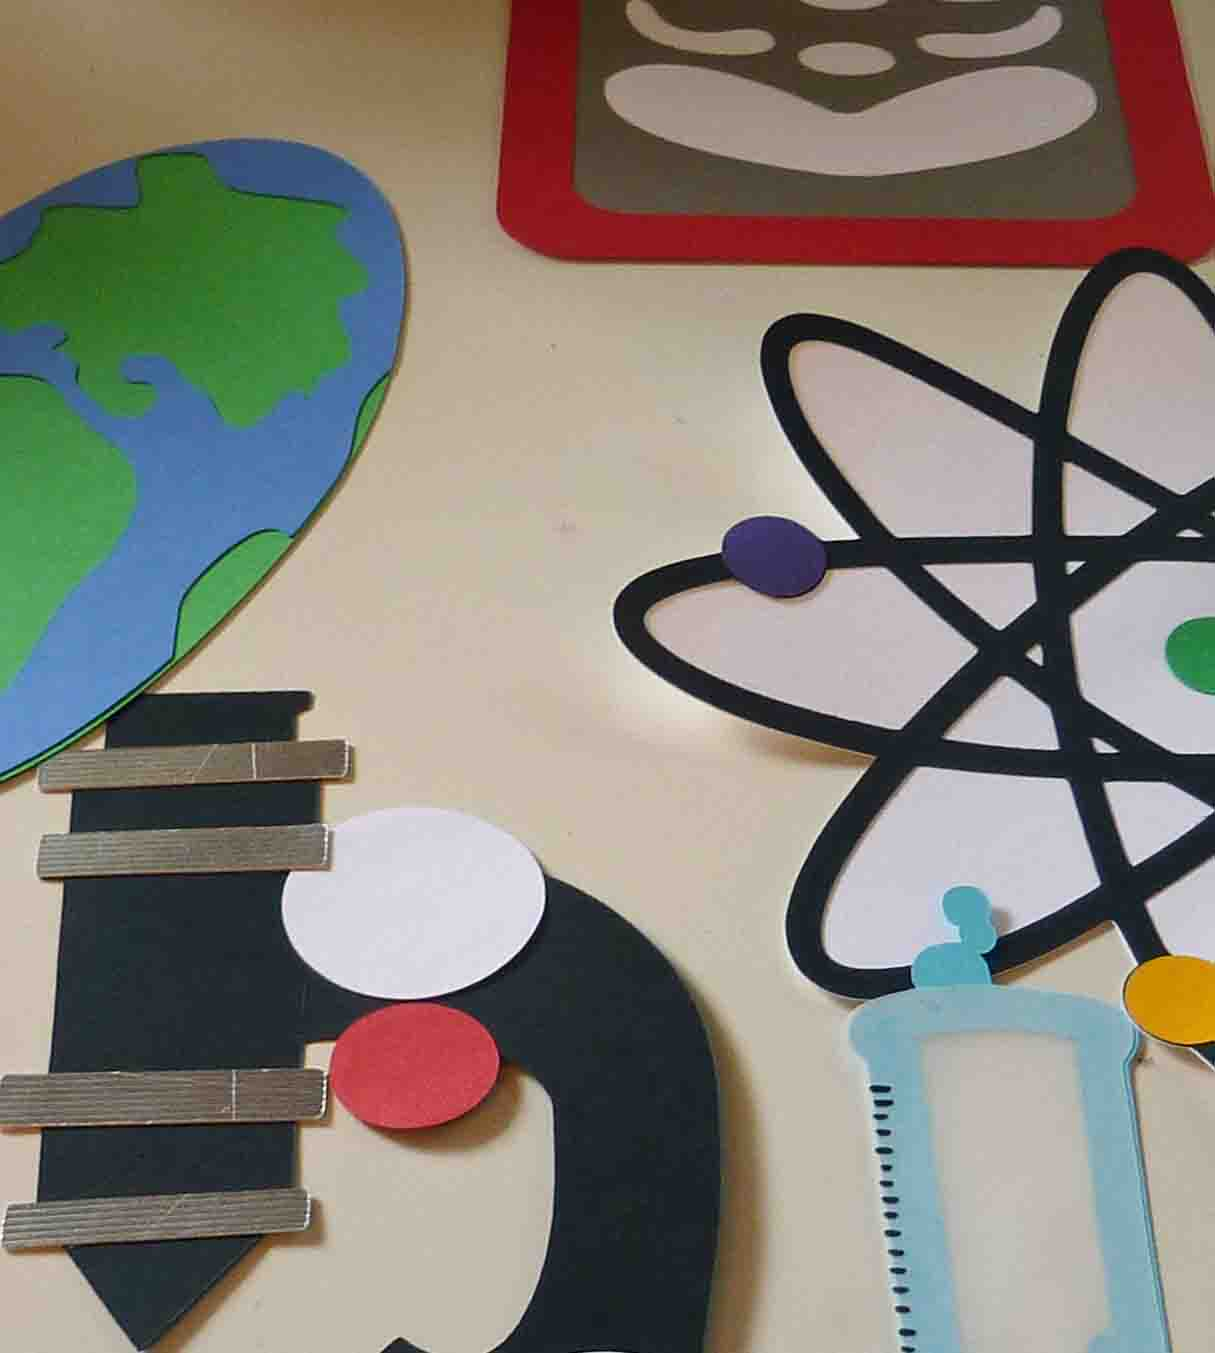 Science Classroom Design Ideas: Cool Beans By L.B.: Science Wall